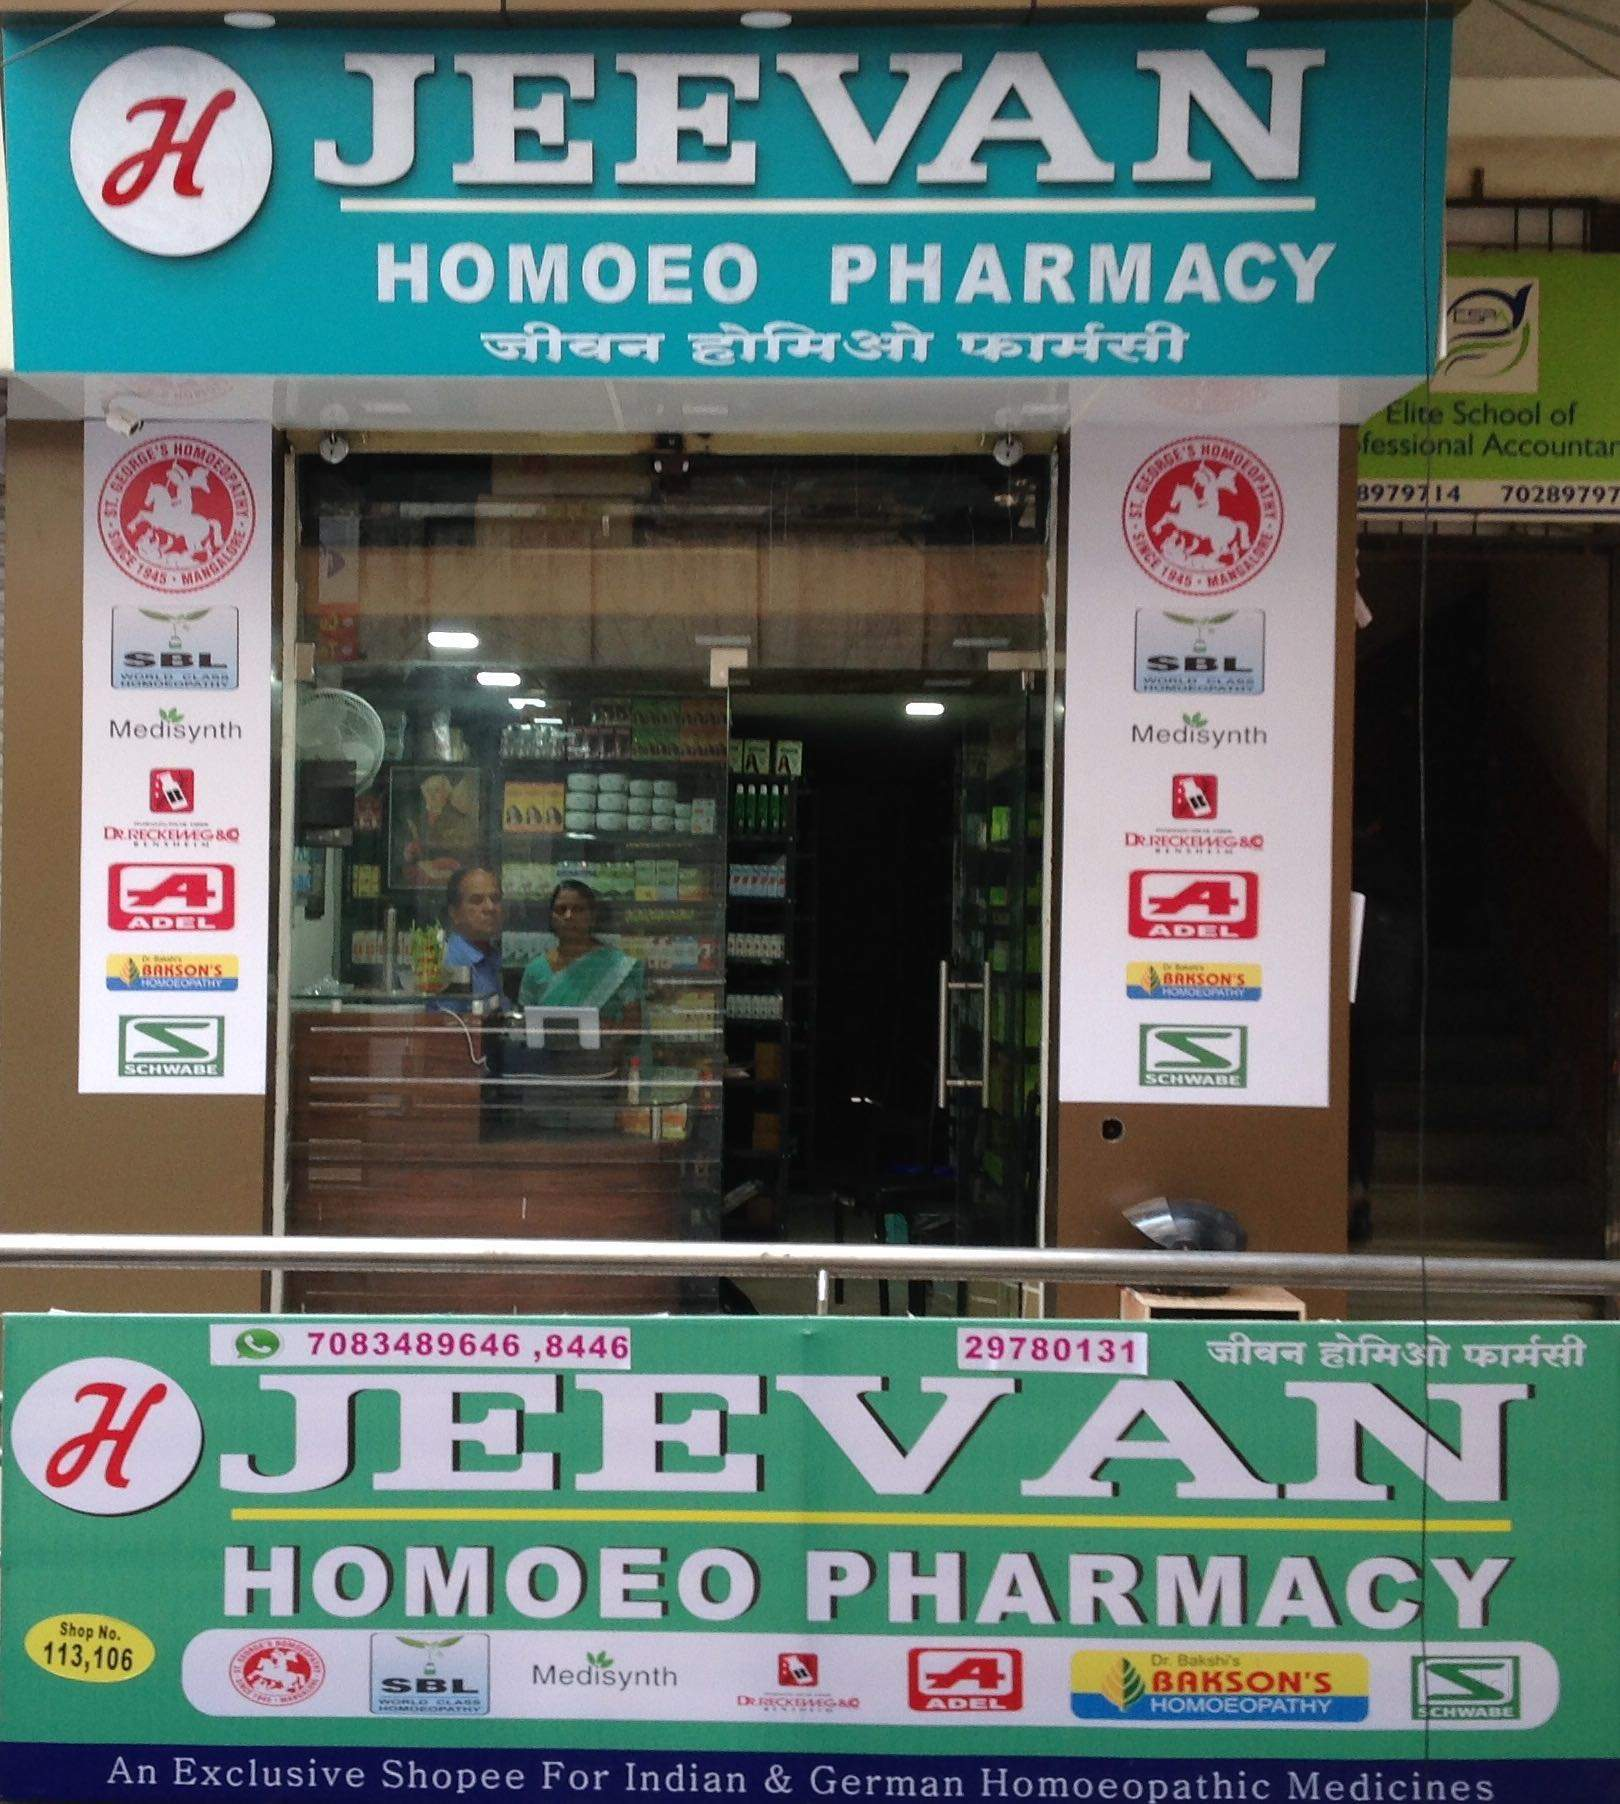 Top 50 Dr Reckeweg Homeopathic Medicine Retailers in Pune - Best Dr